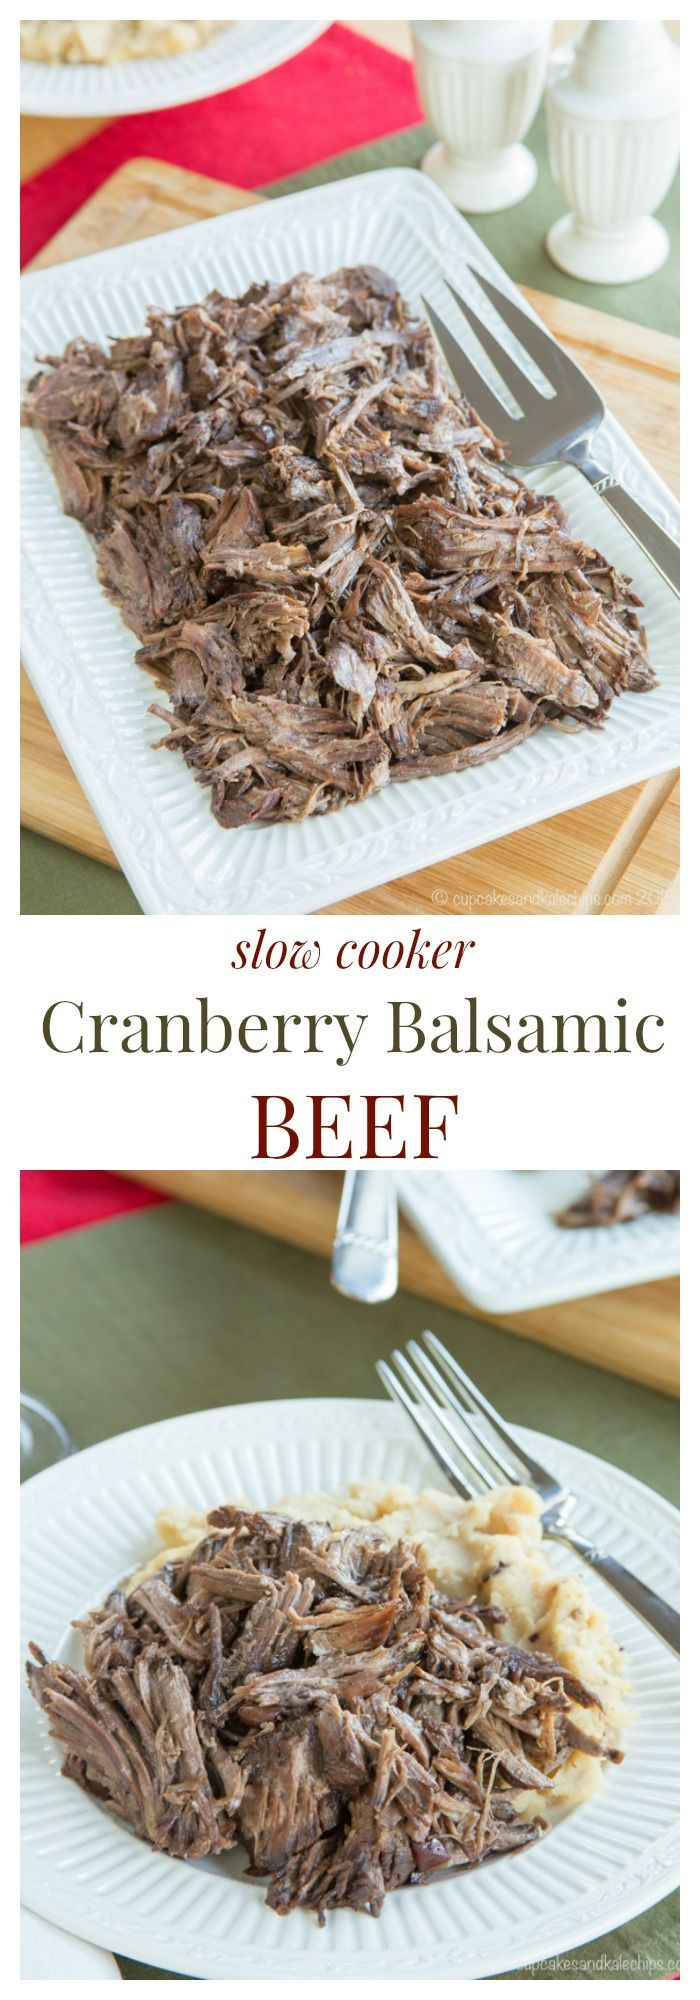 Slow Cooker Cranberry Balsamic Beef - just four ingredients in this easy slow cooker recipe for a tender, fall apart beef roast. #SundaySupper with #GalloFamily #ad | cupcakesandkalech... | gluten free